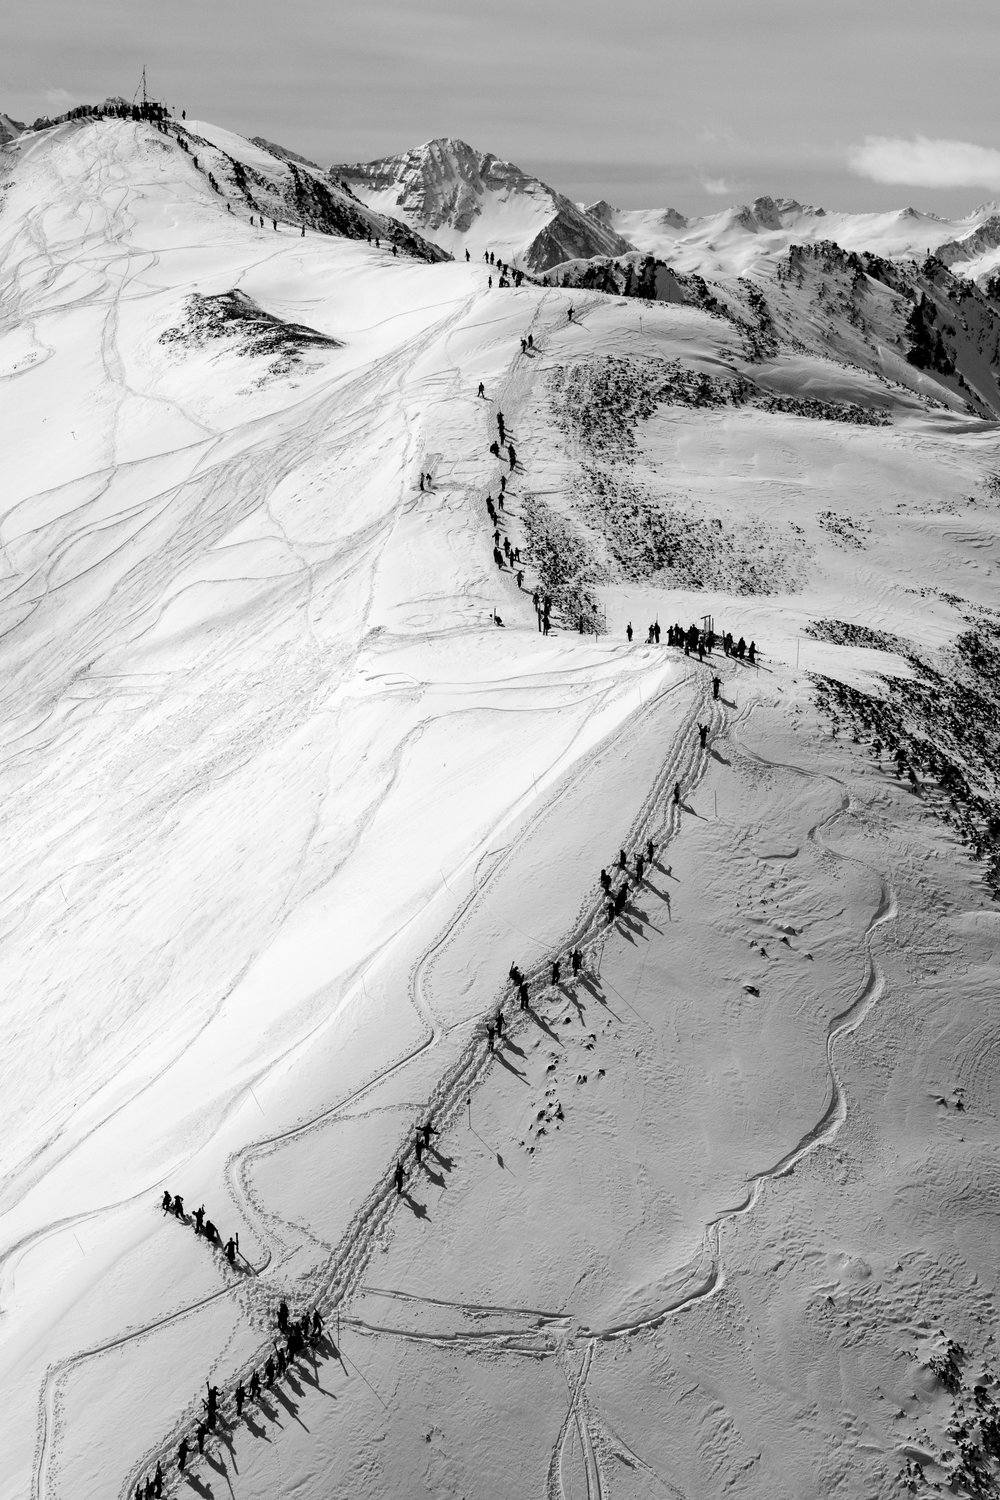 THE LINE, HIGHLANDS BOWL (B&W) #3